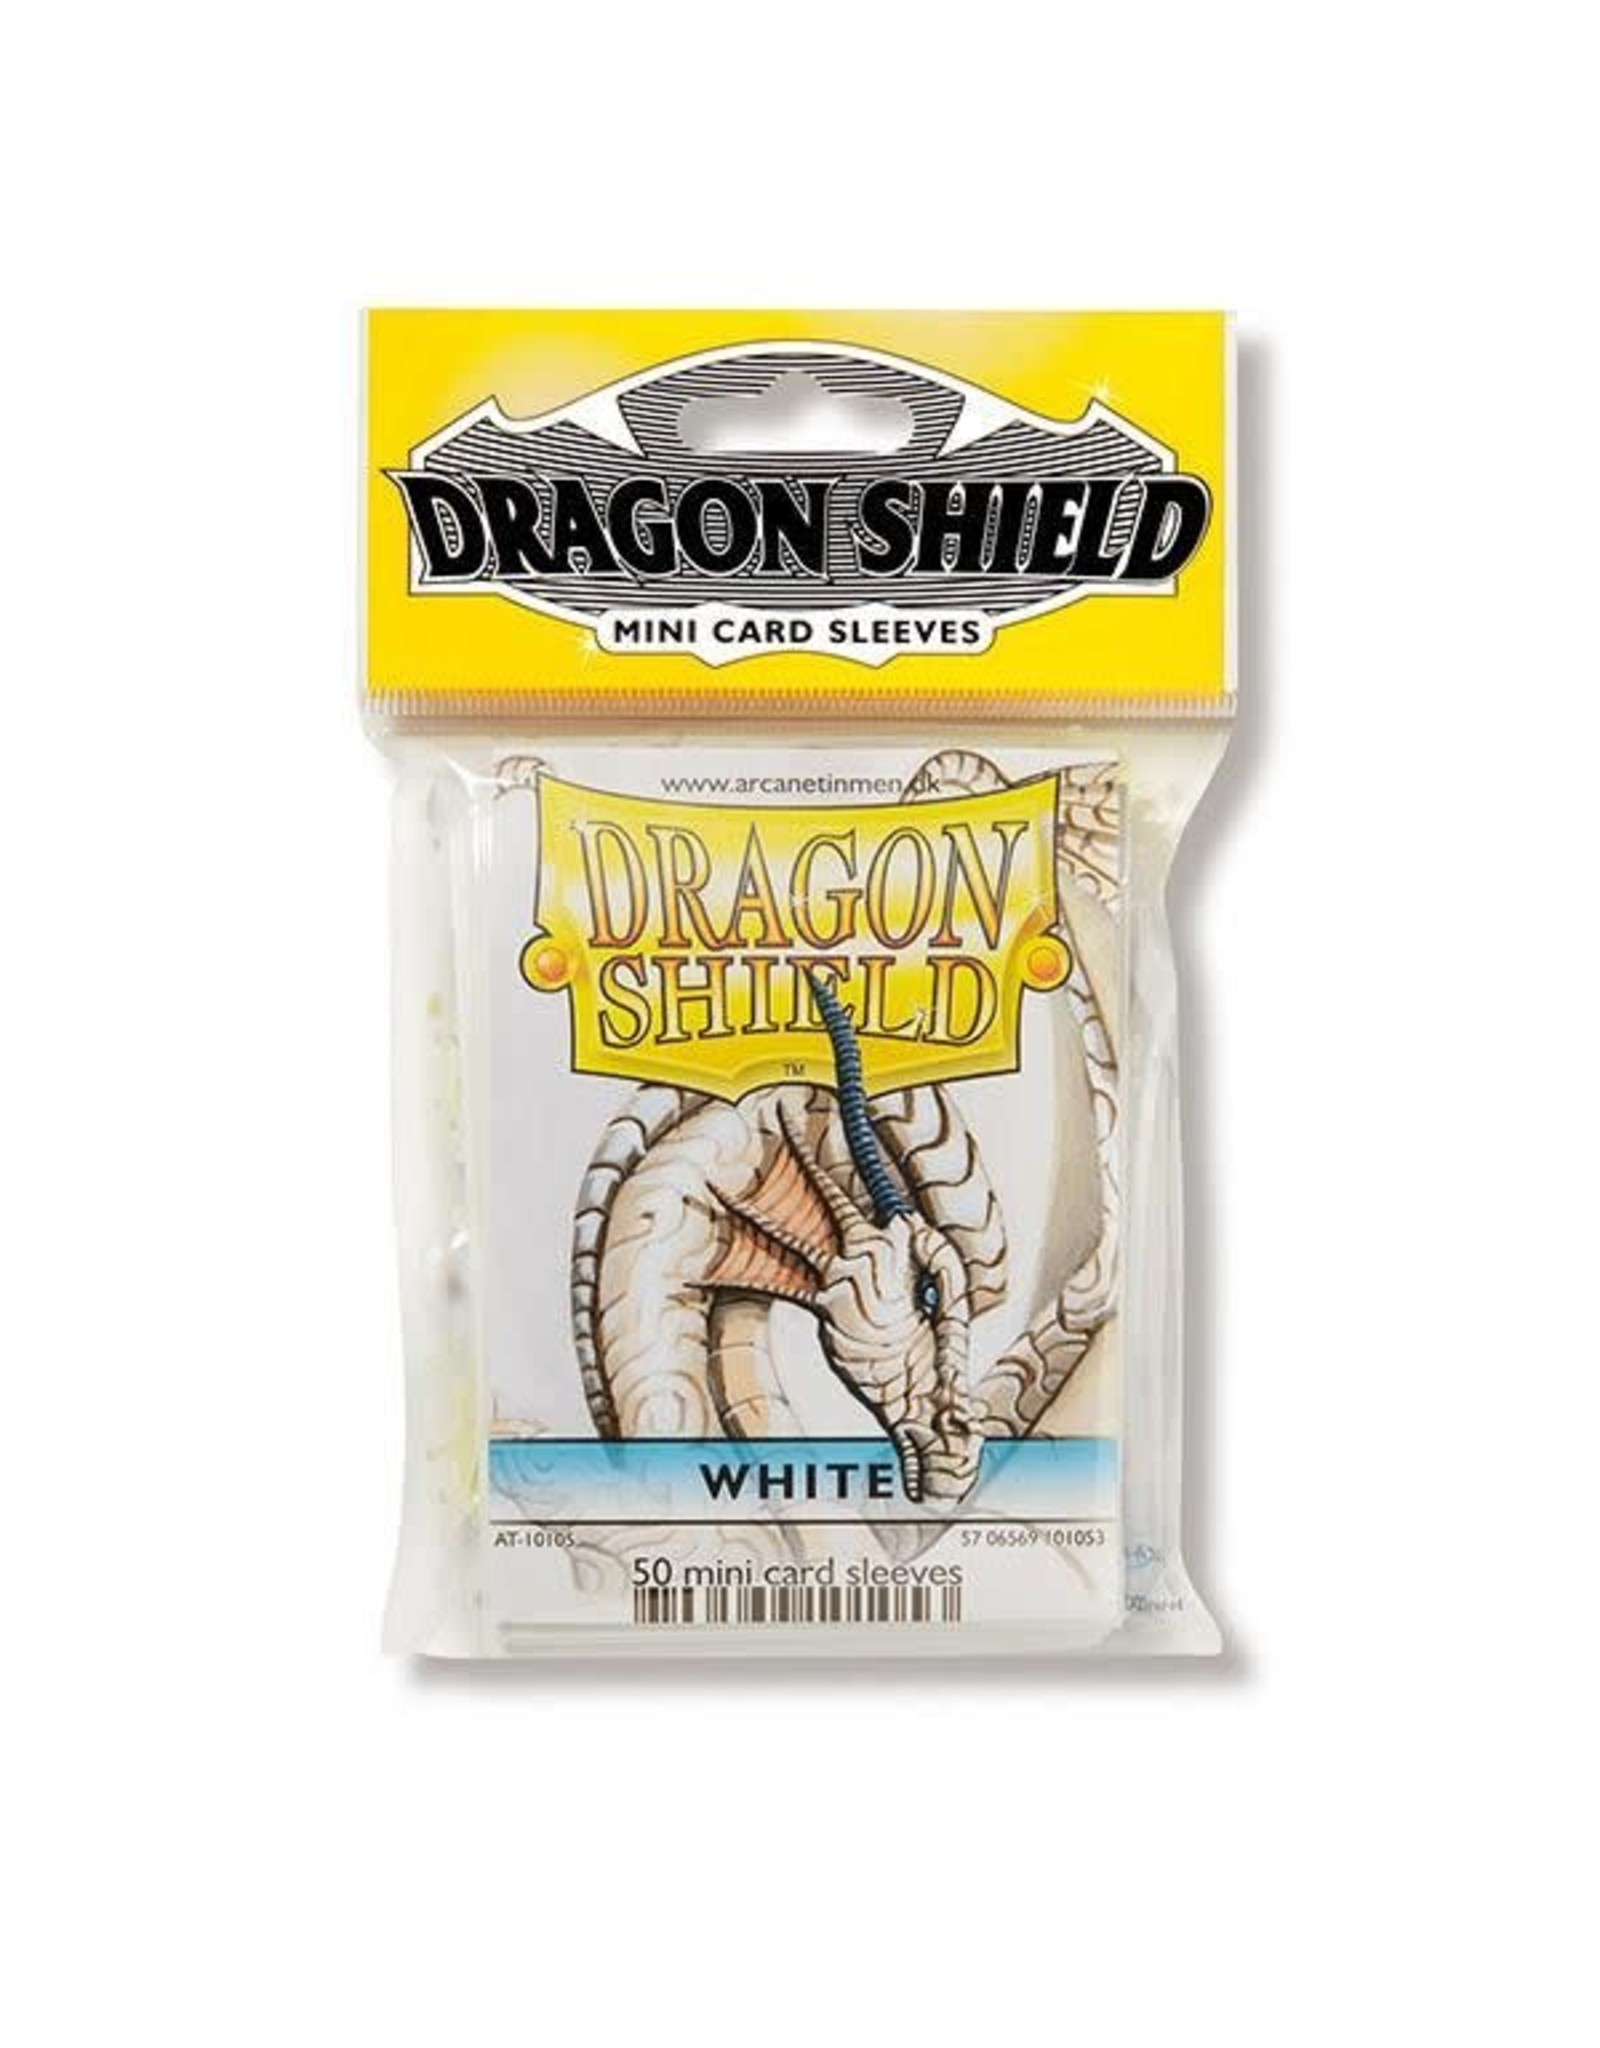 Dragon Shield Mini Sleeves - White (50 ct. in bag)